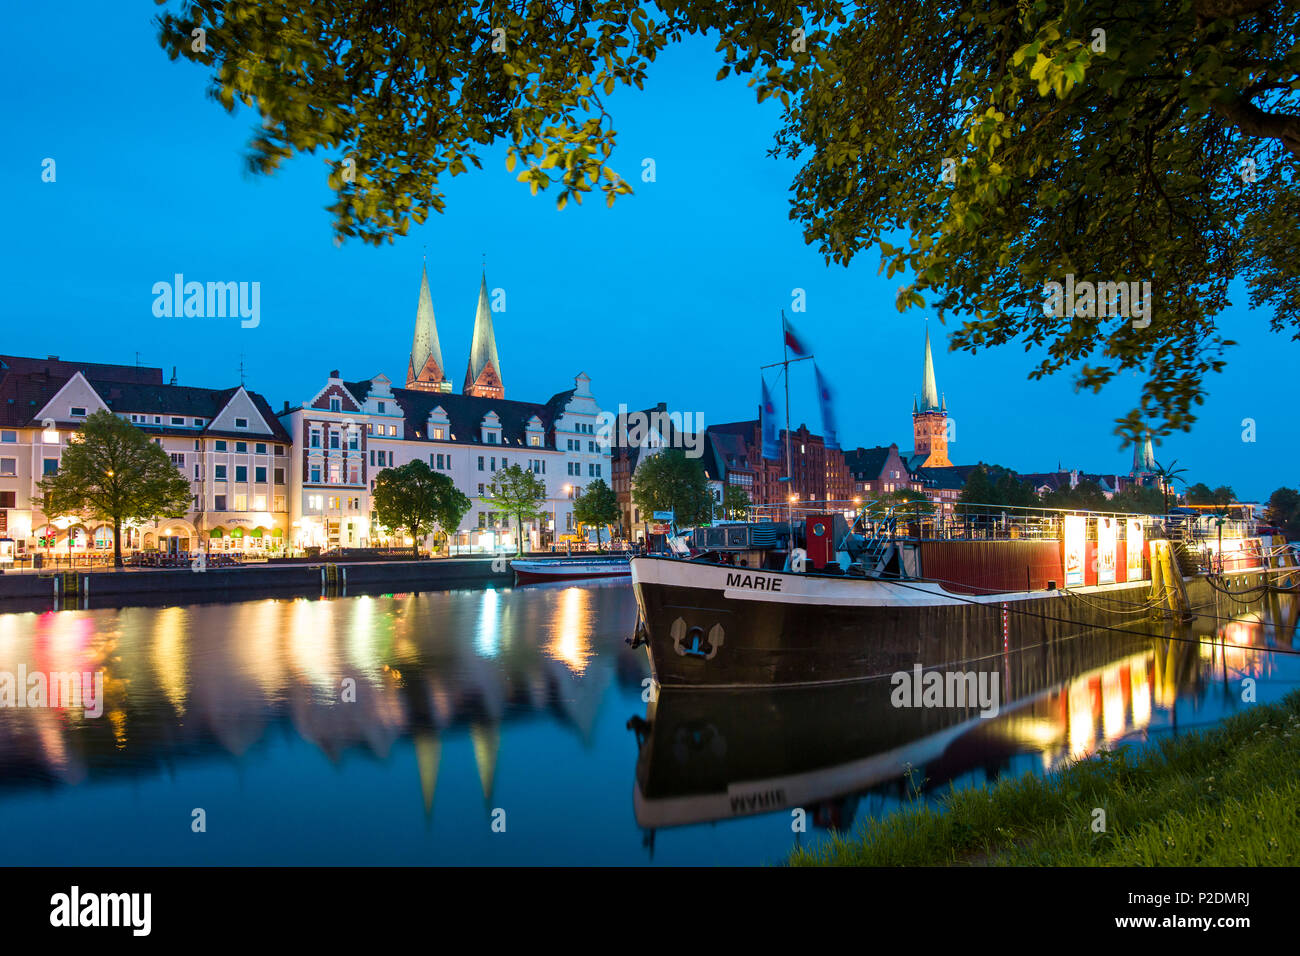 View over river Trave at night towards the old town with the church of St Mary and church of St. Peter, Hanseatic City, Luebeck, - Stock Image